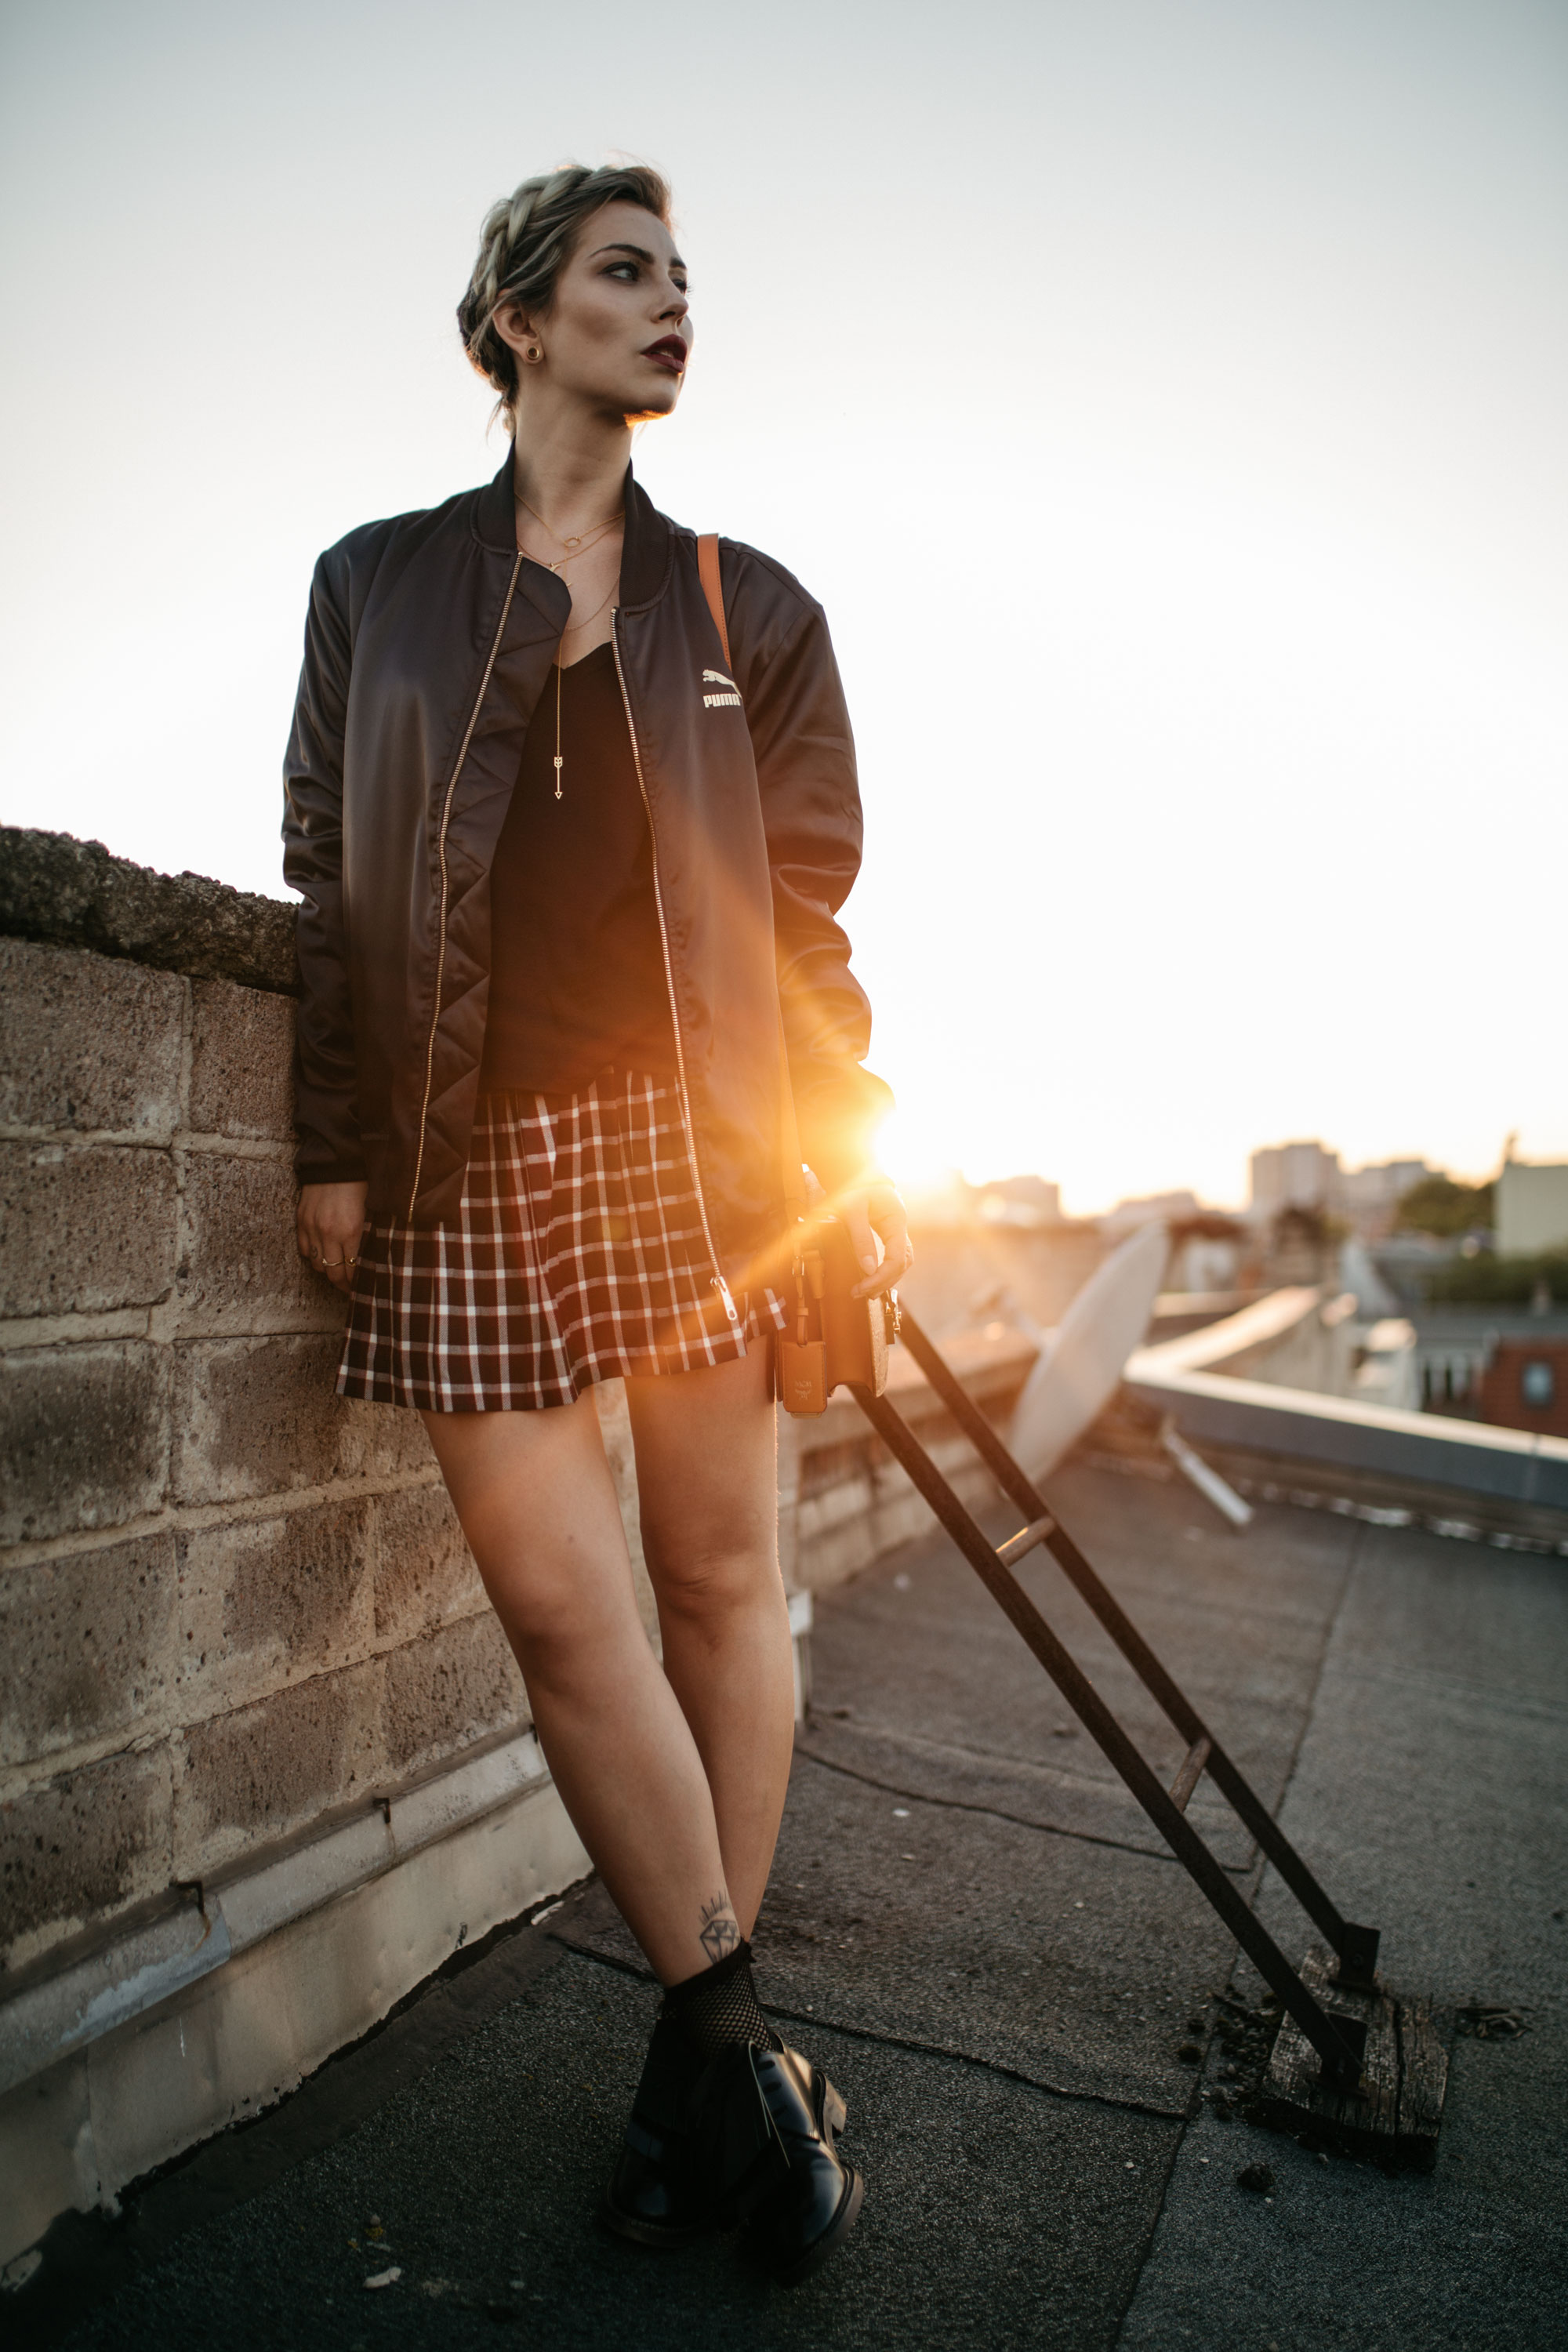 sundowner on the rooftop |Location: Berlin Friedrichshain | style: sporty, casual, girly, college | freedom